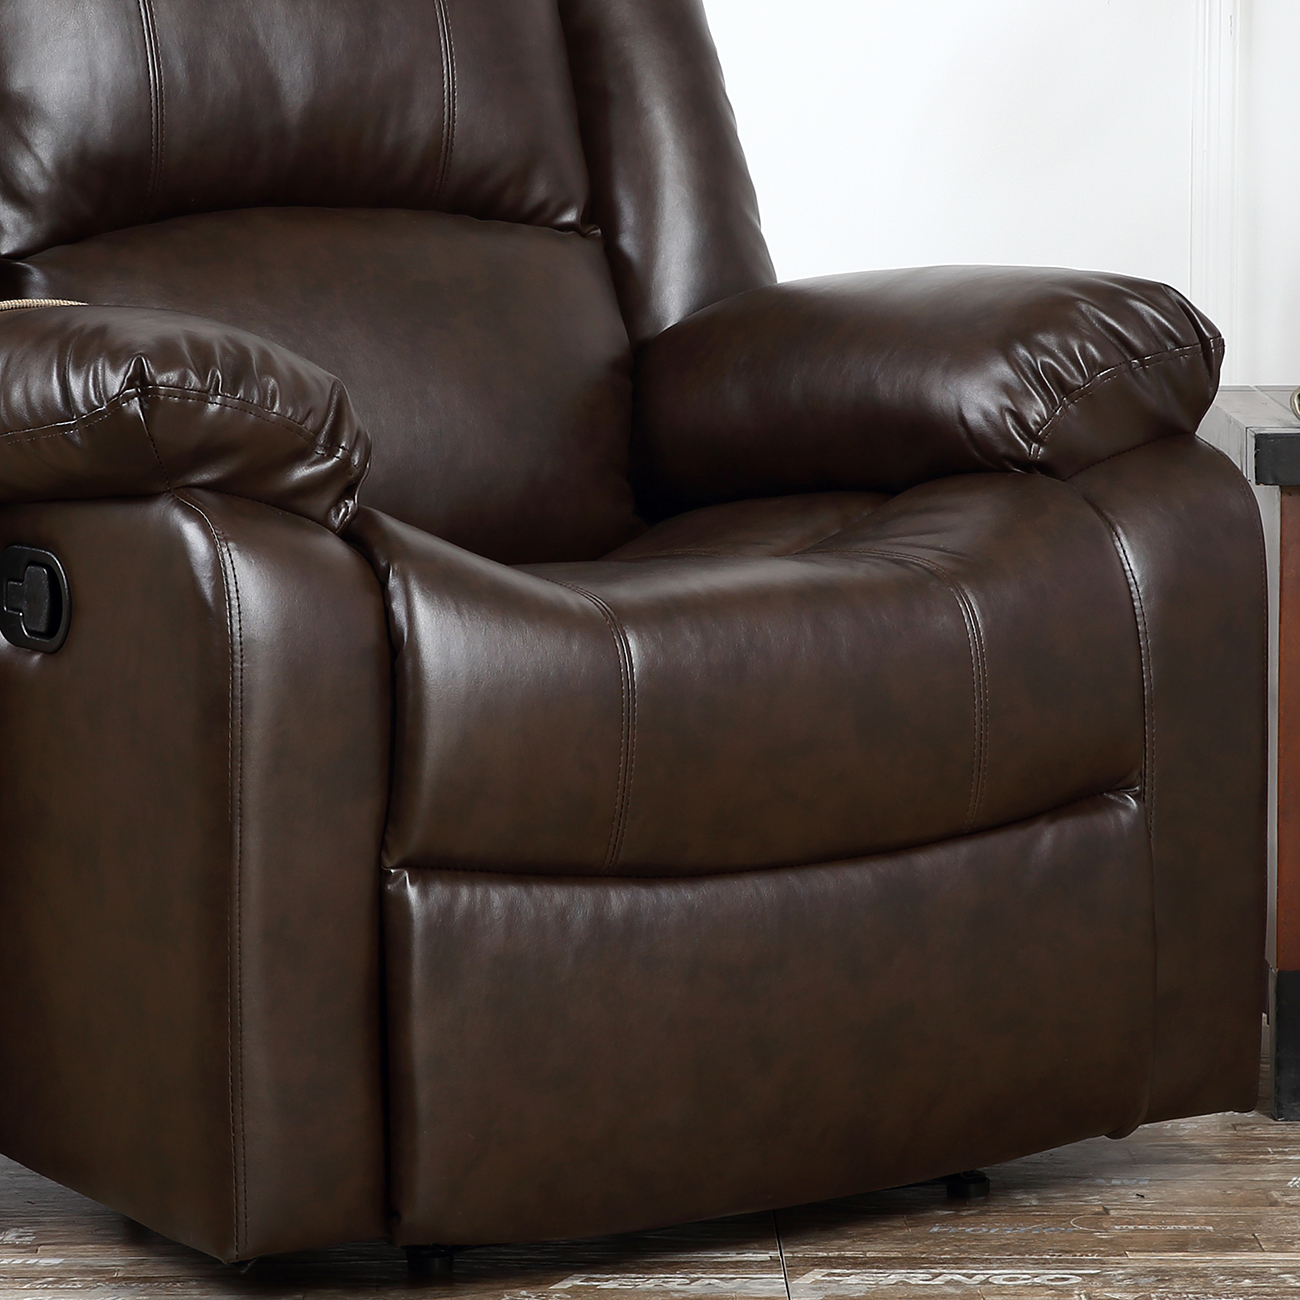 Recliner Chairs For Living Room Dark Brown Black Leather Upholstered Furniture Ebay